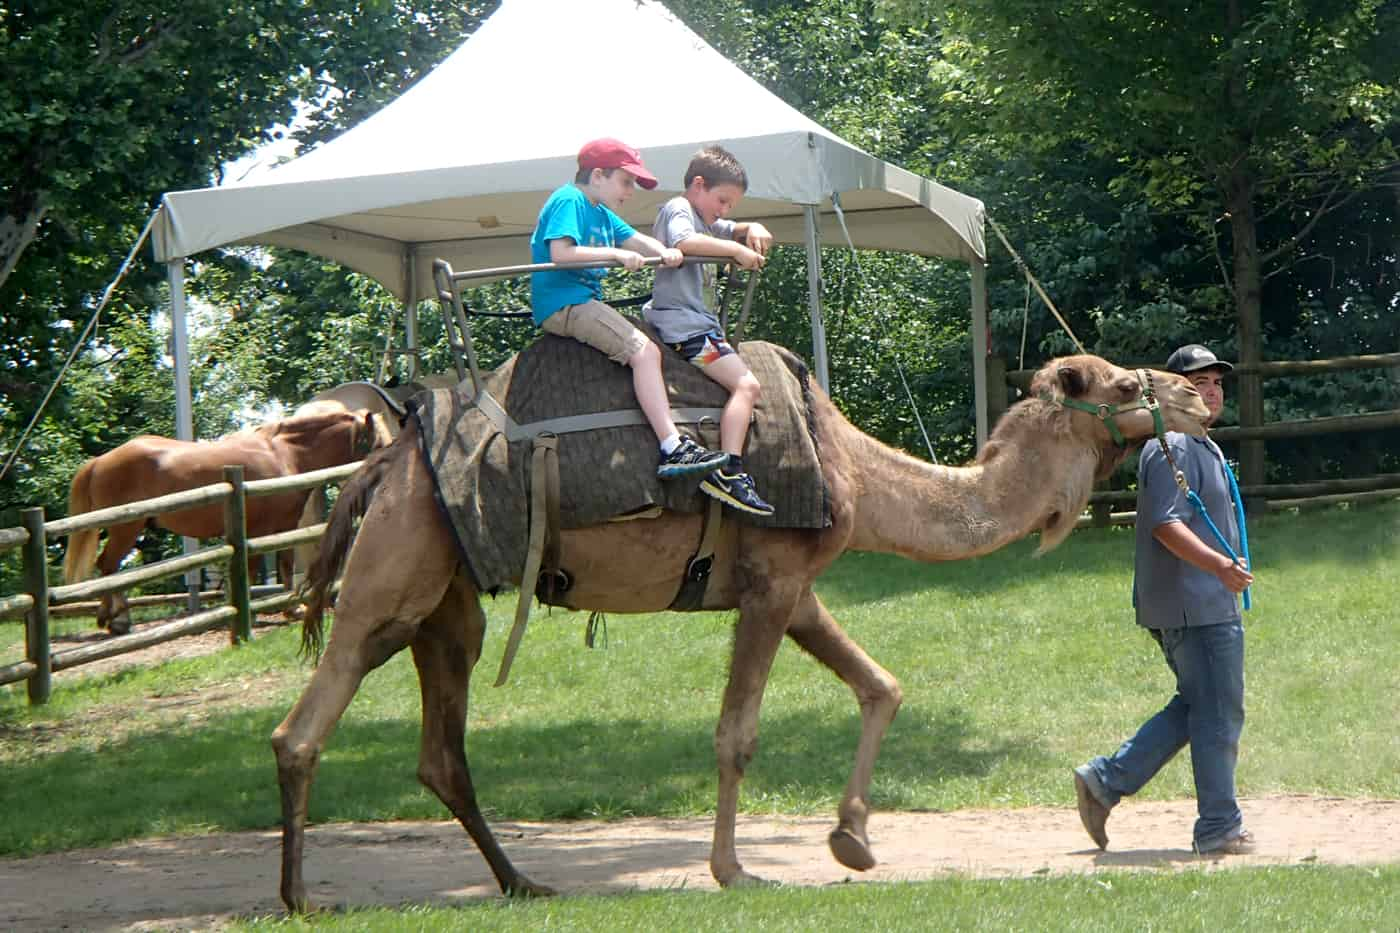 kids on camel ride at Grants Farm